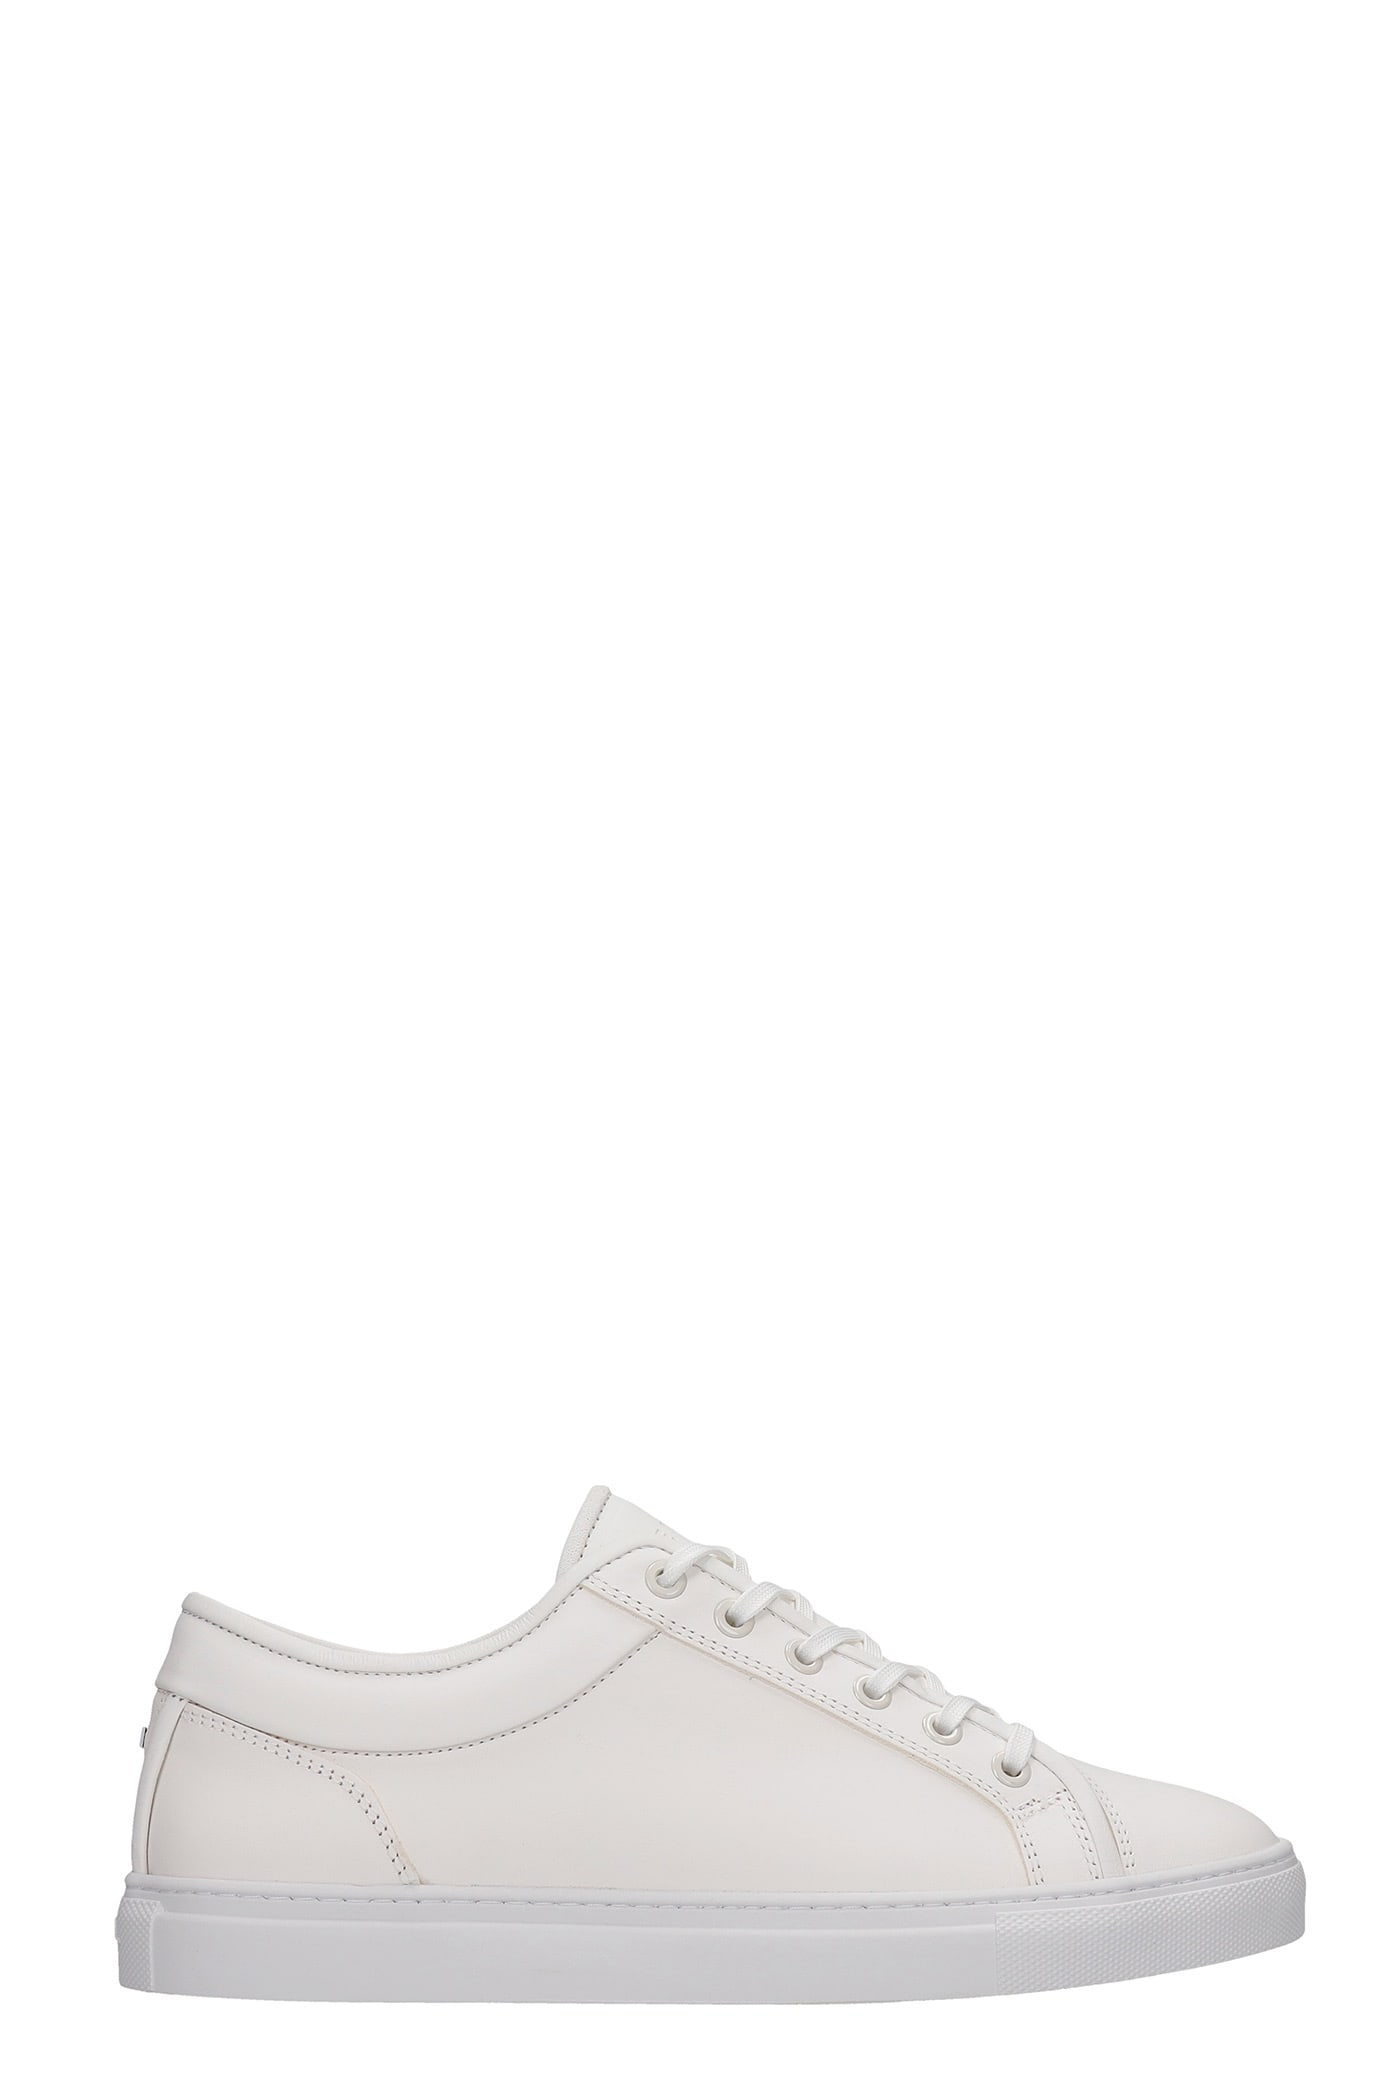 Lt 01 Sneakers In White Leather